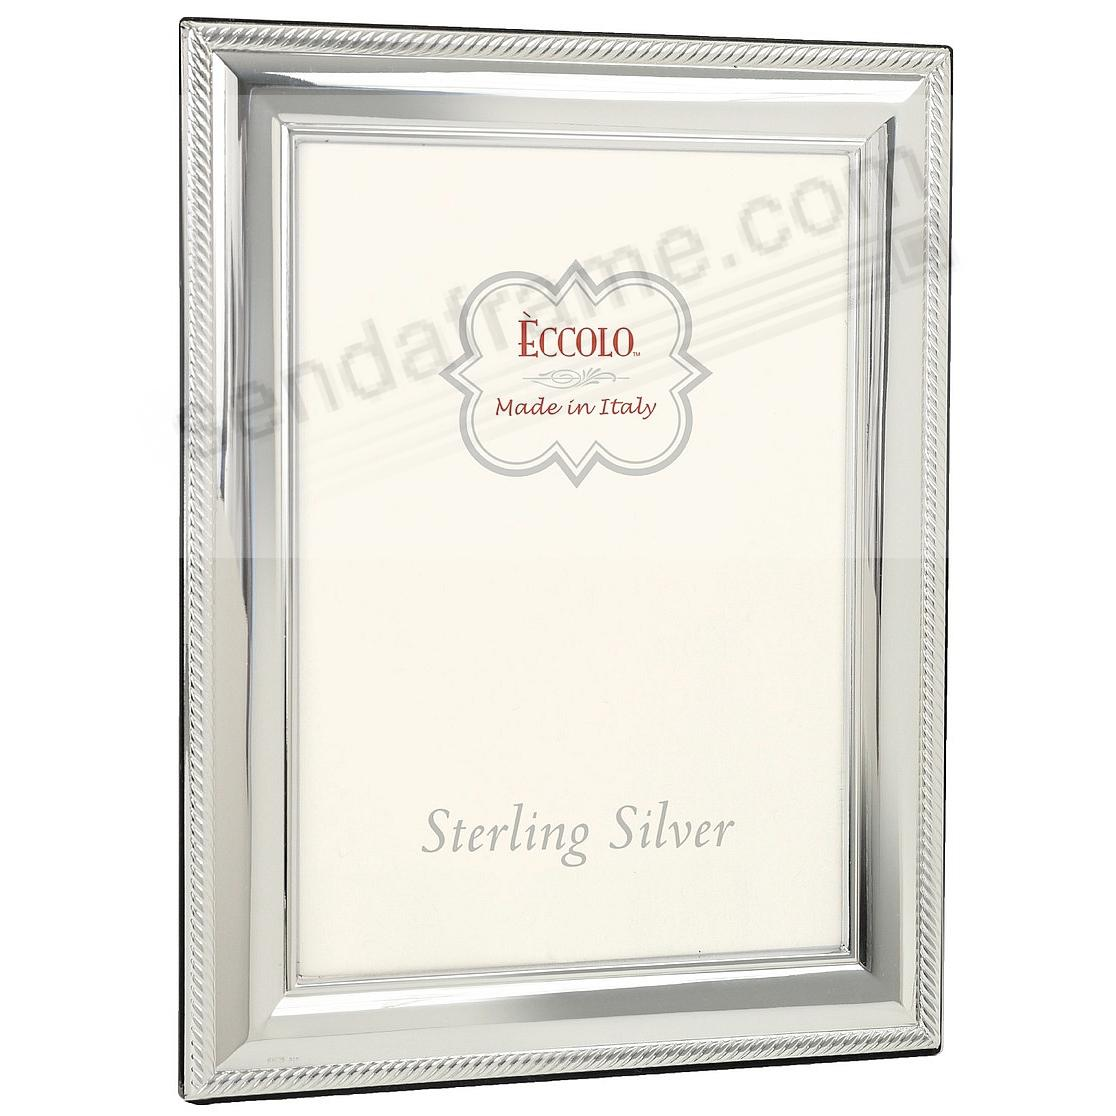 ROPE BORDER Fine .925 Sterling Silver frame from Italy by Eccolo ...